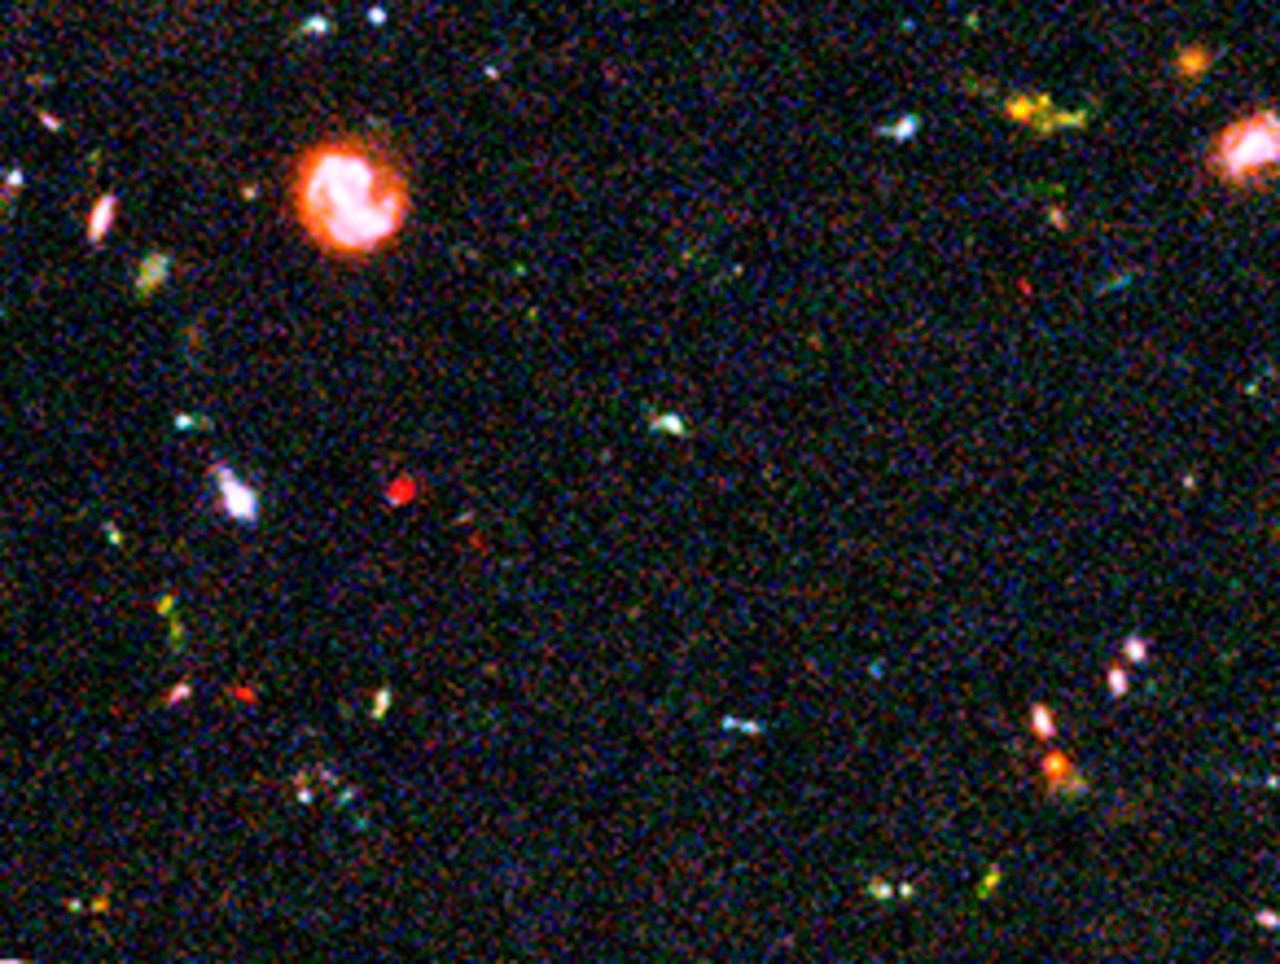 hubble ultra deep field 2017 - photo #22